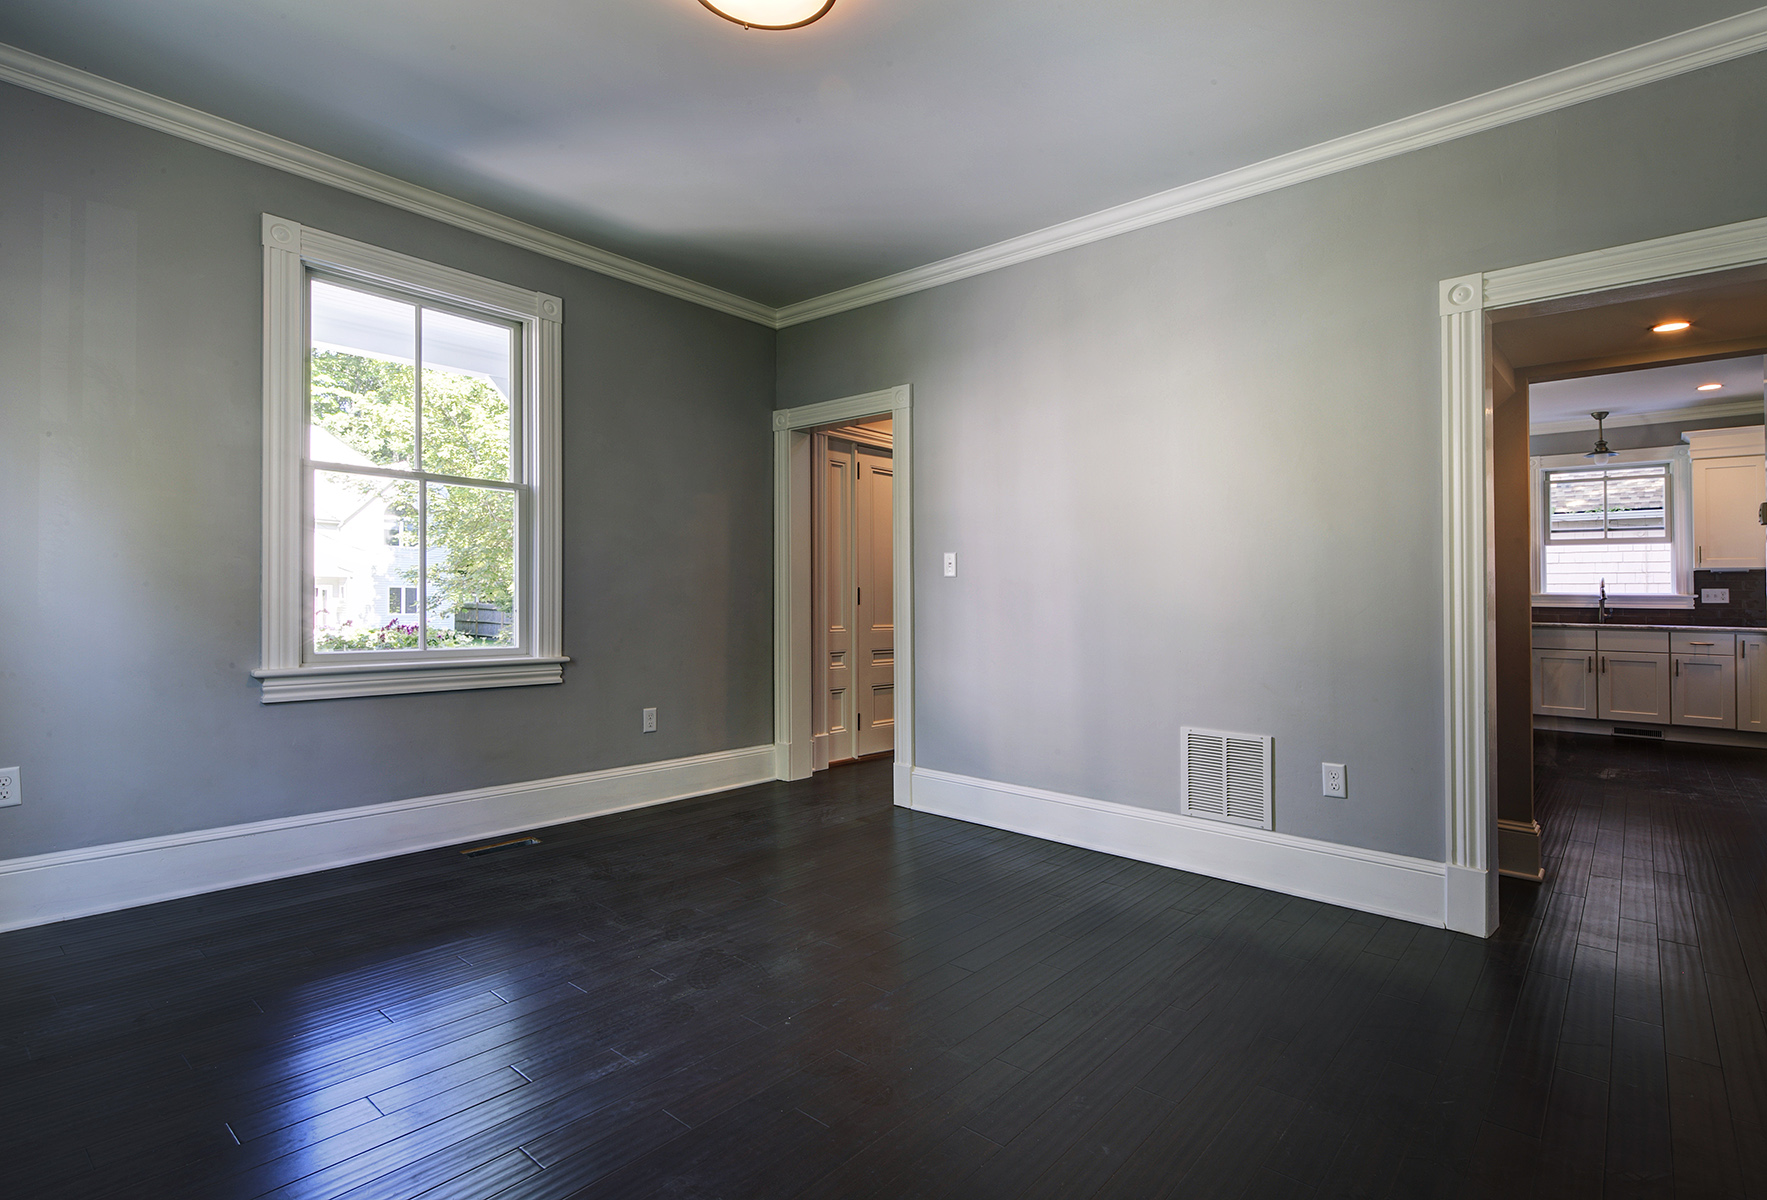 Additional photo for property listing at The John E. Dowling House 13 Chapel Street Newport, Rhode Island 02840 Estados Unidos